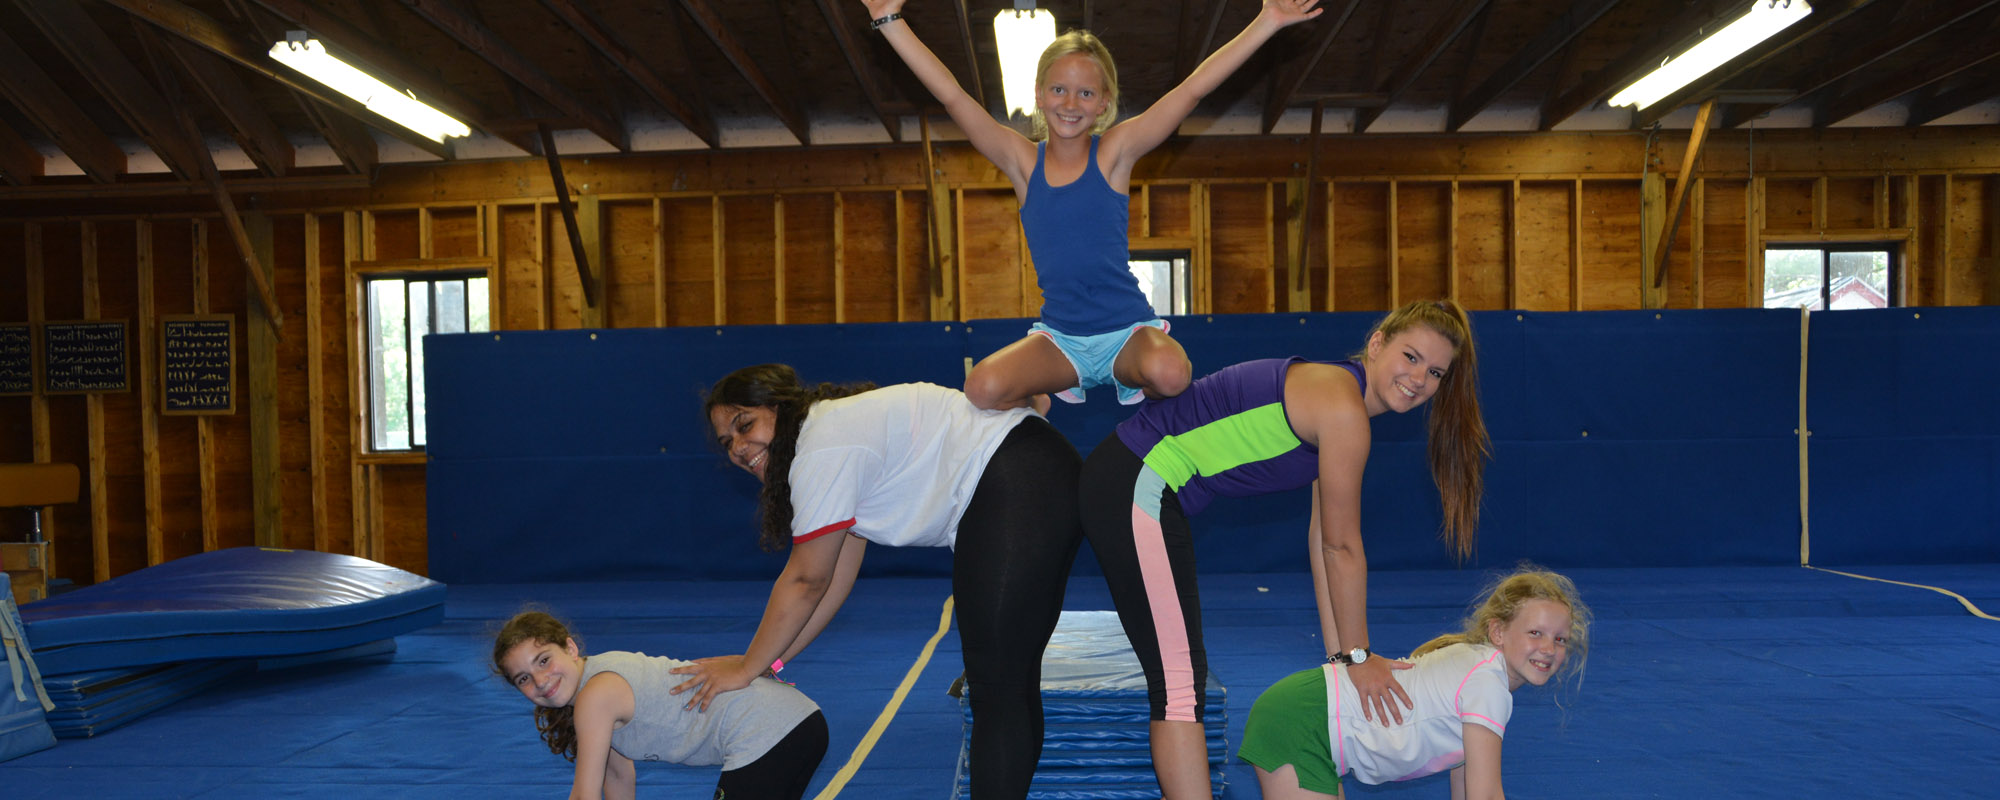 Lake Greeley Camp - Gymnastics Activity at Summer Camp